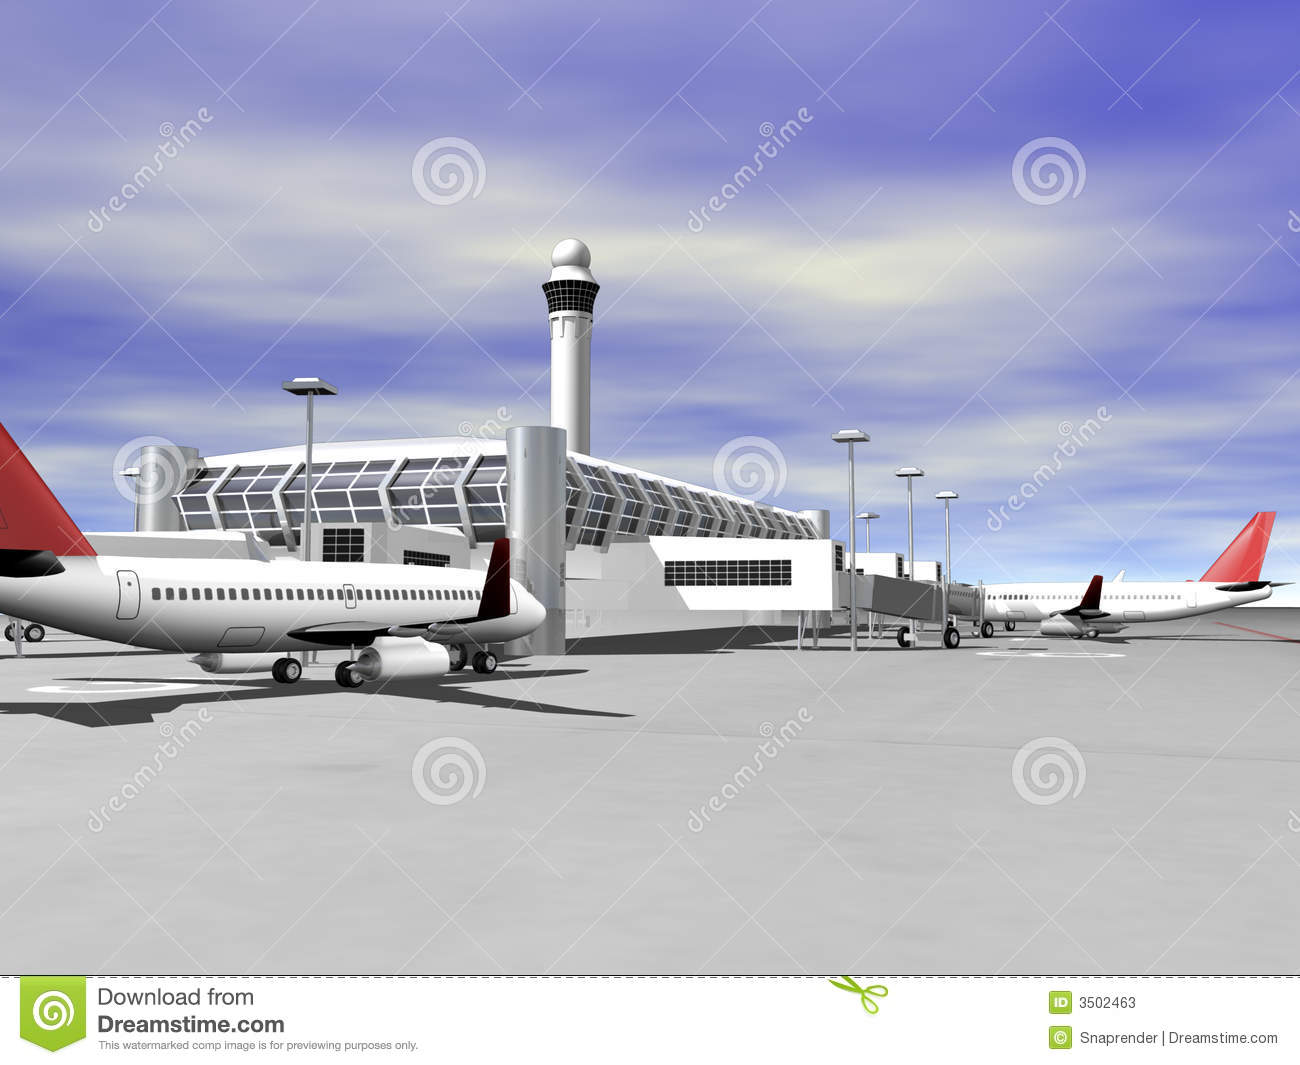 clipart airport - photo #30